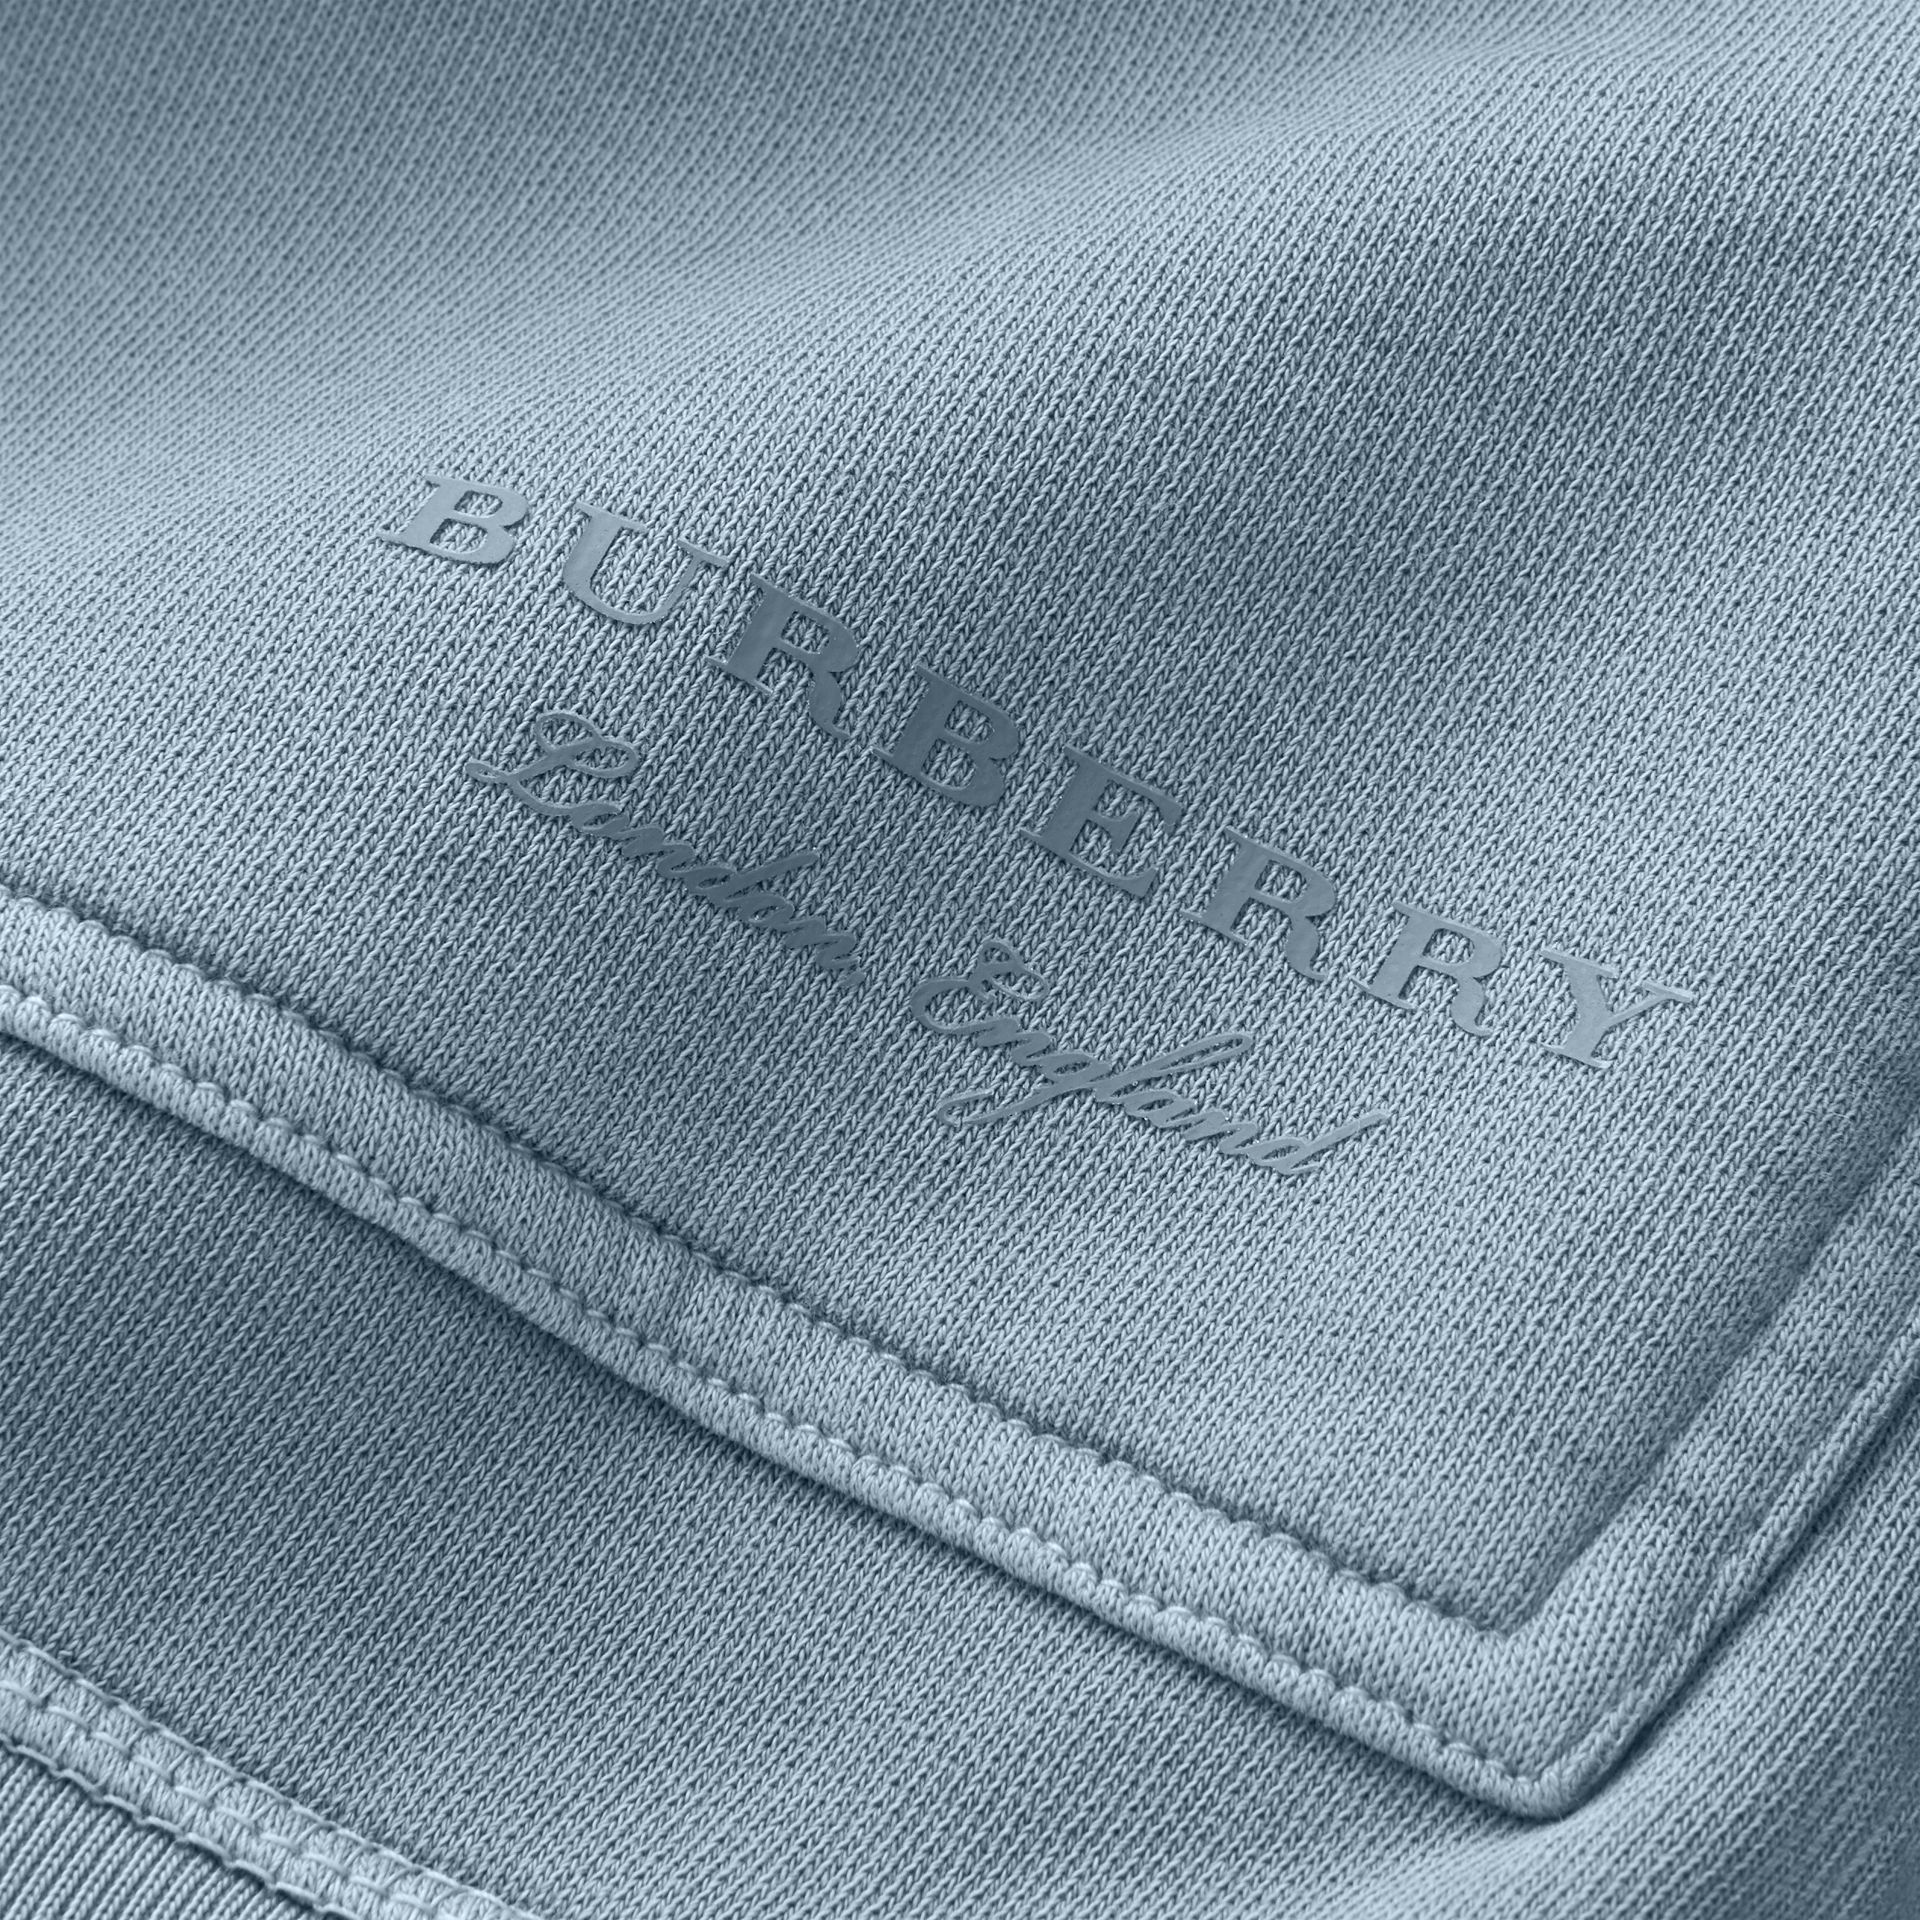 Unisex Pigment-dyed Cotton Oversize Sweatshirt in Dusty Blue - Men | Burberry - gallery image 2